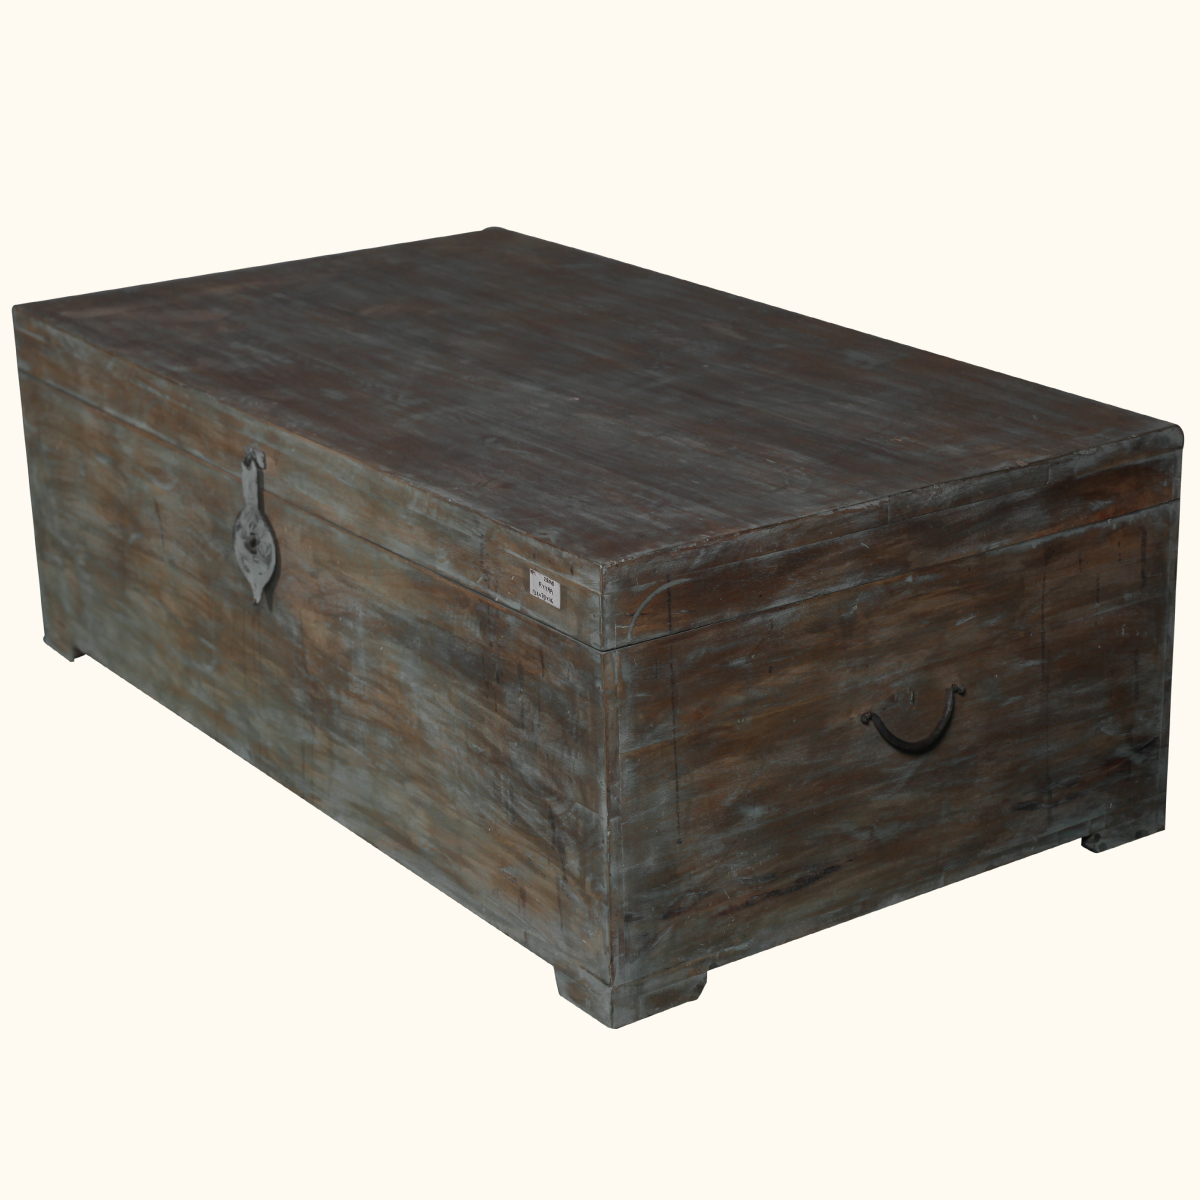 Rustic mango wood distressed storage coffee table chest hope box trunk furniture ebay Coffee table chest with storage